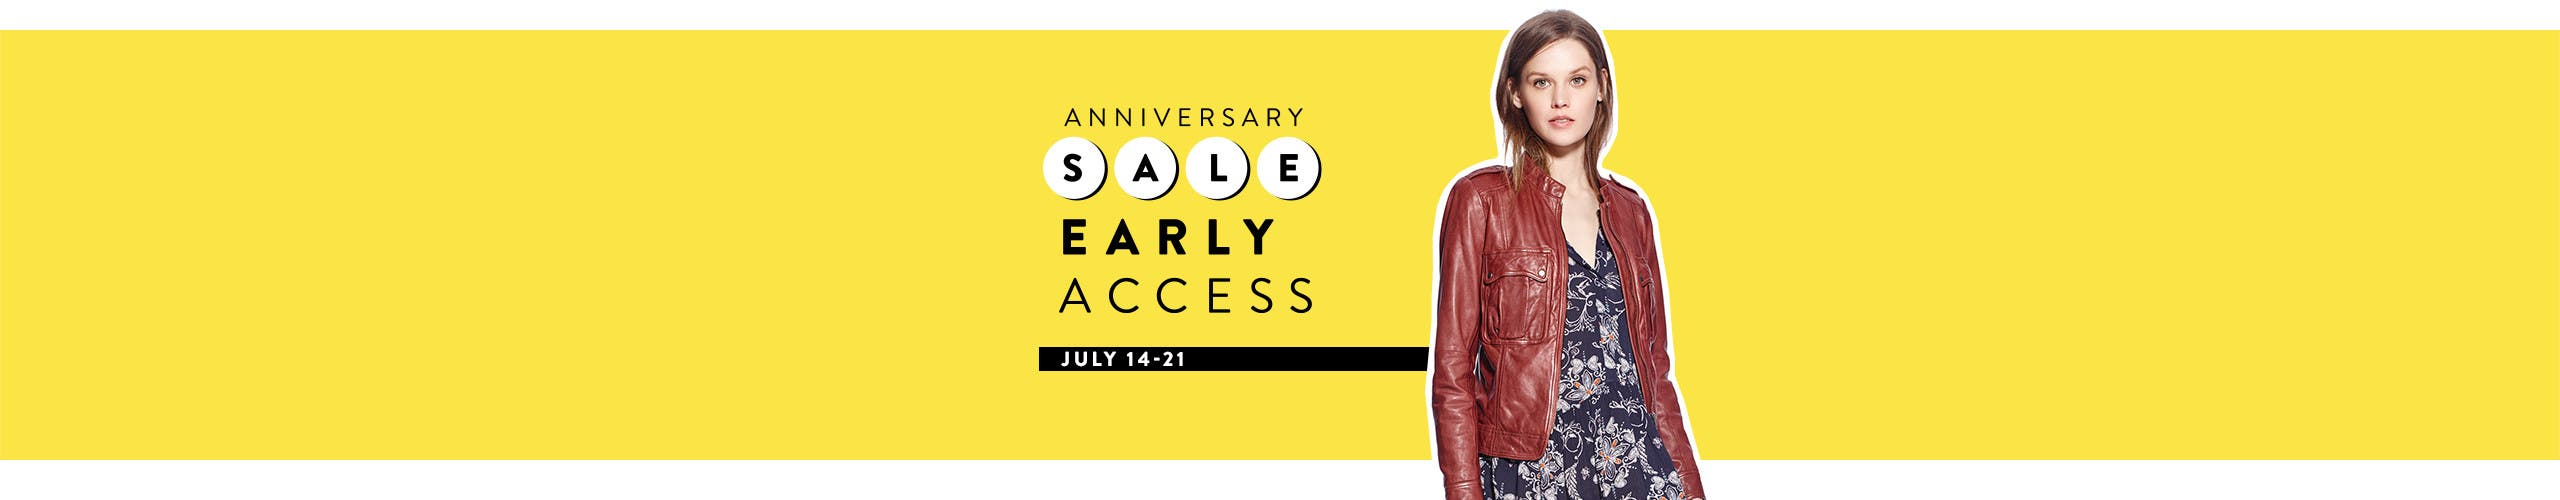 Anniversary Sale Early Access, July 14-21.